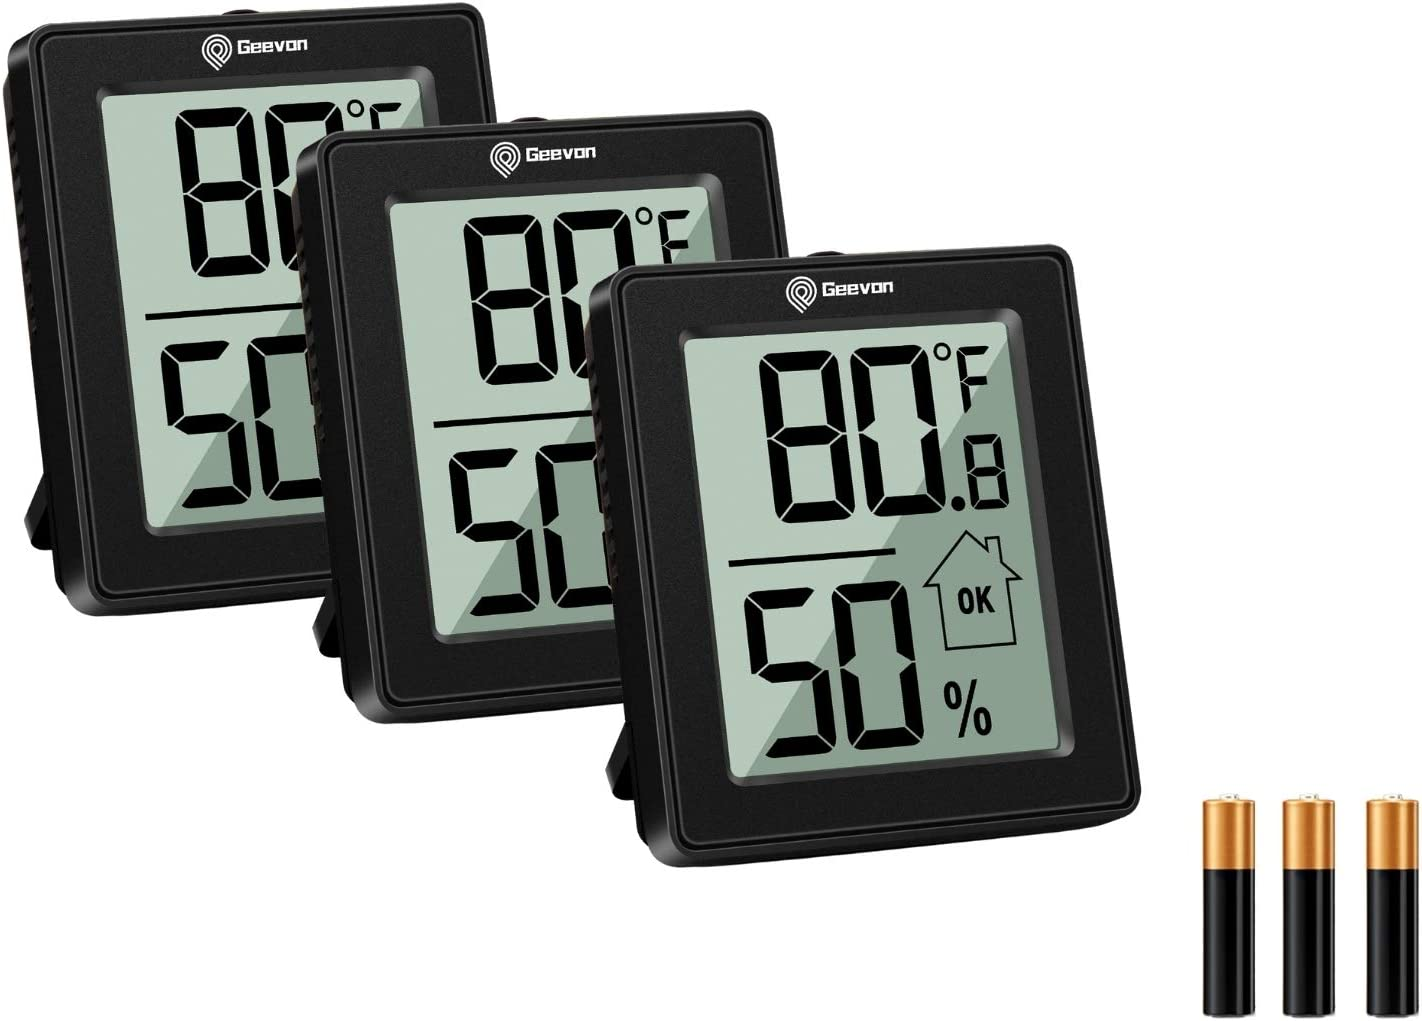 Geevon Digital Hygrometer Indoor Thermometer Room Humidity Gauge with Battery,Temperature Humidity Meter Indicator for Home, Office, Greenhouse, Mini Hygrometer,Black(3)